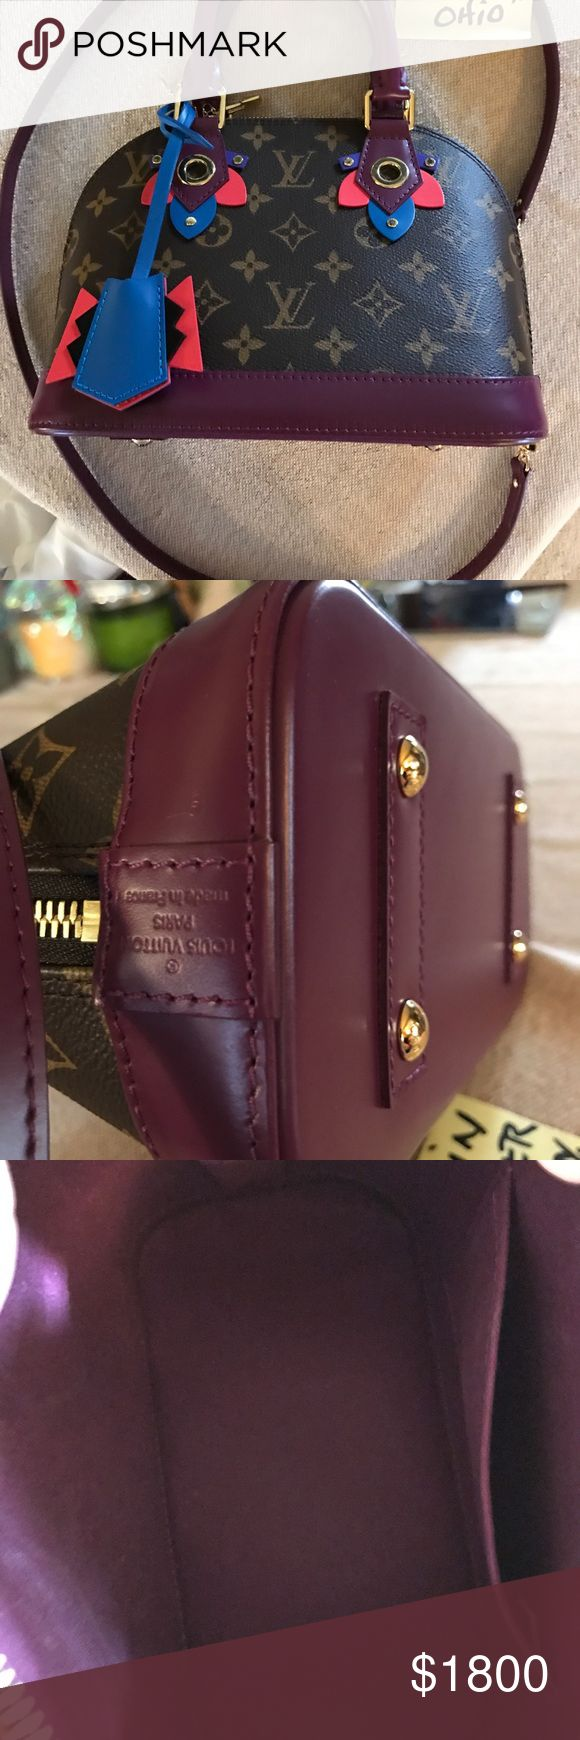 Louis  Vuitton Alma BB Totem- like new. This is a beautiful bag. I carried it once but it is not the style for me . It is pristine condition. No trades . Louis Vuitton Bags Crossbody Bags